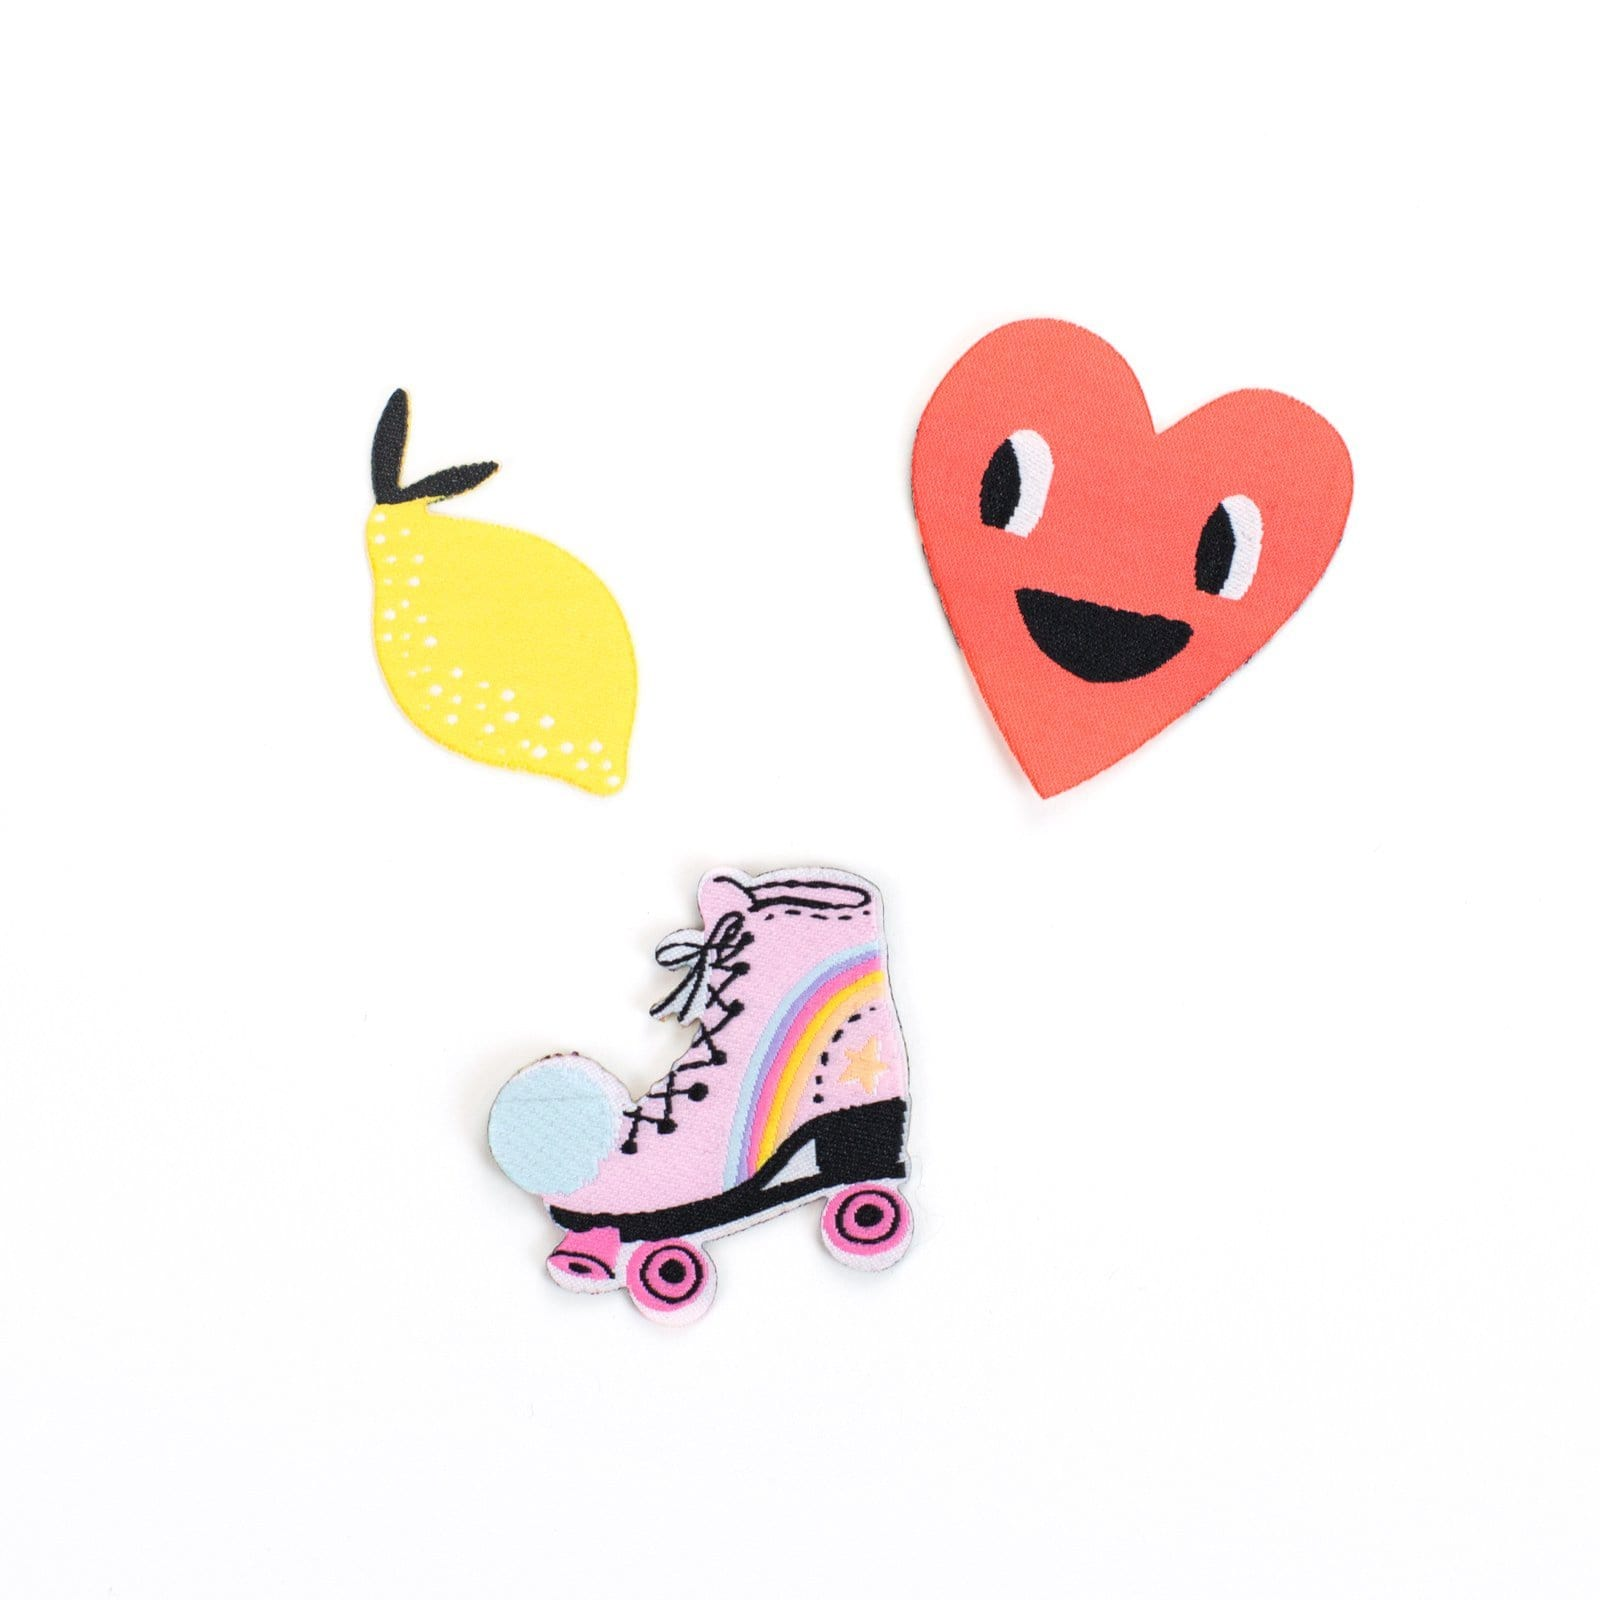 Heart / Lemon / Roller Skate Patch Set